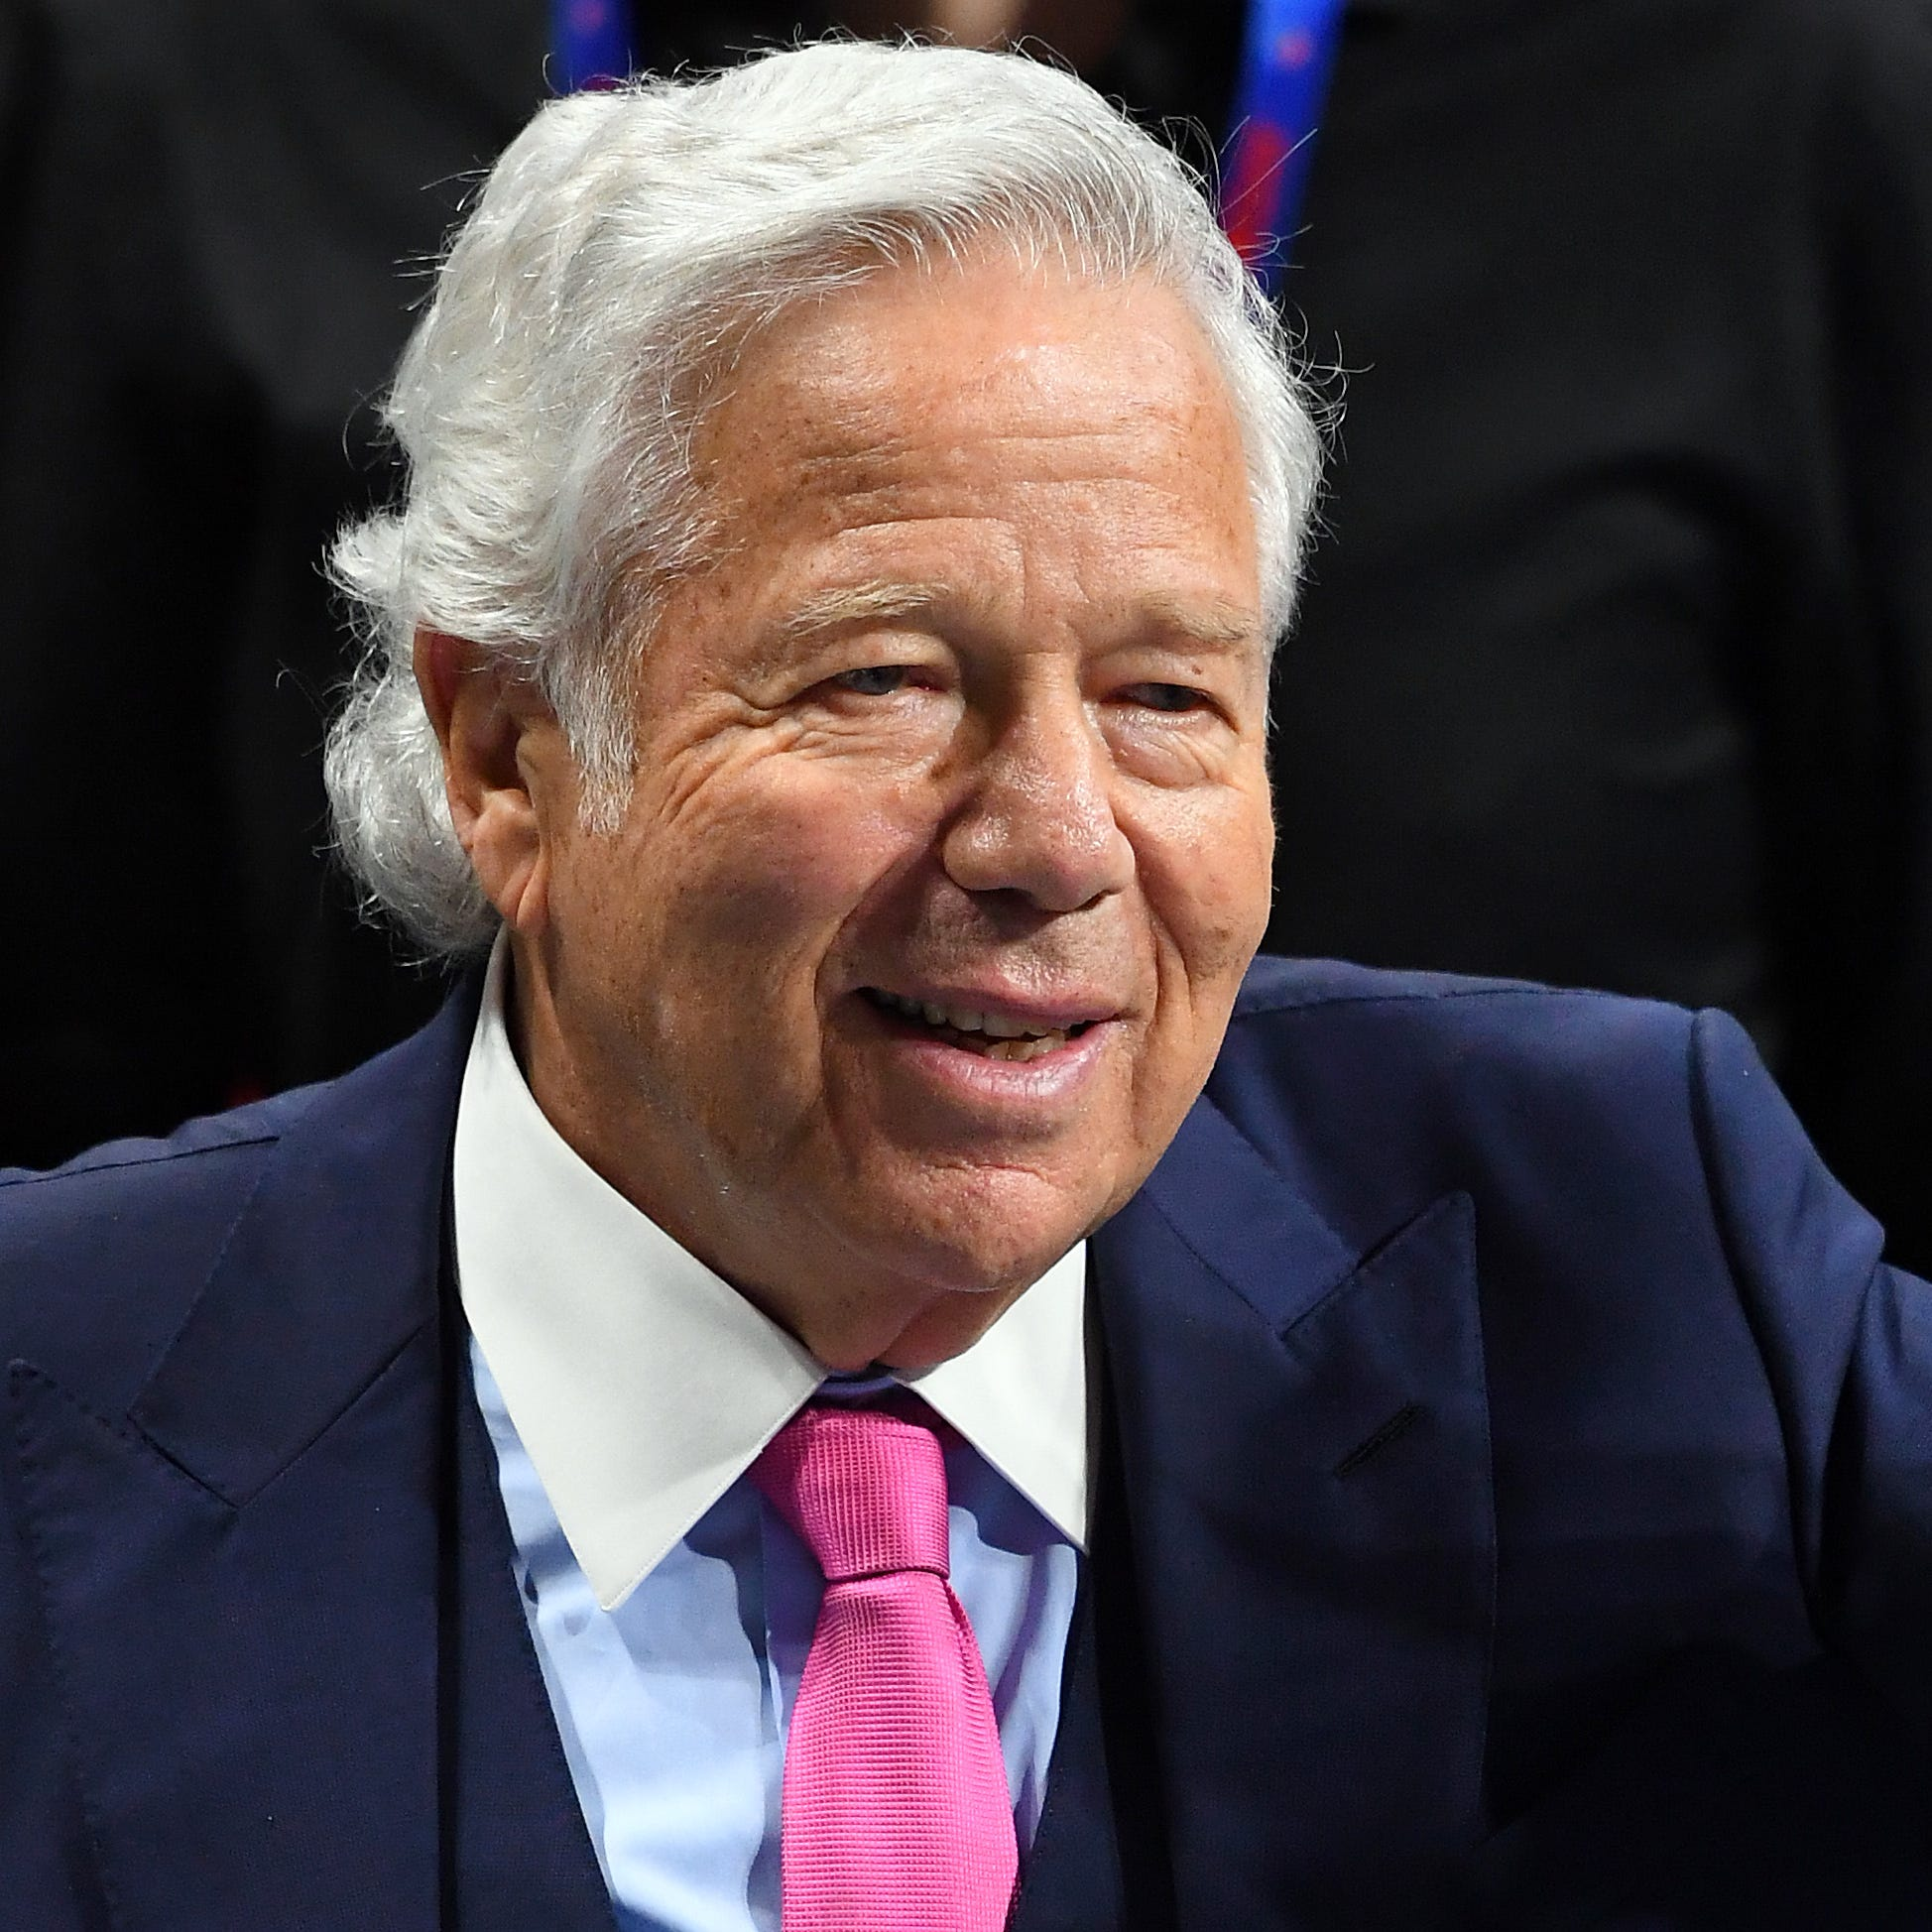 Patriots owner Robert Kraft waives arraignment, wants jury trial in sex spa case